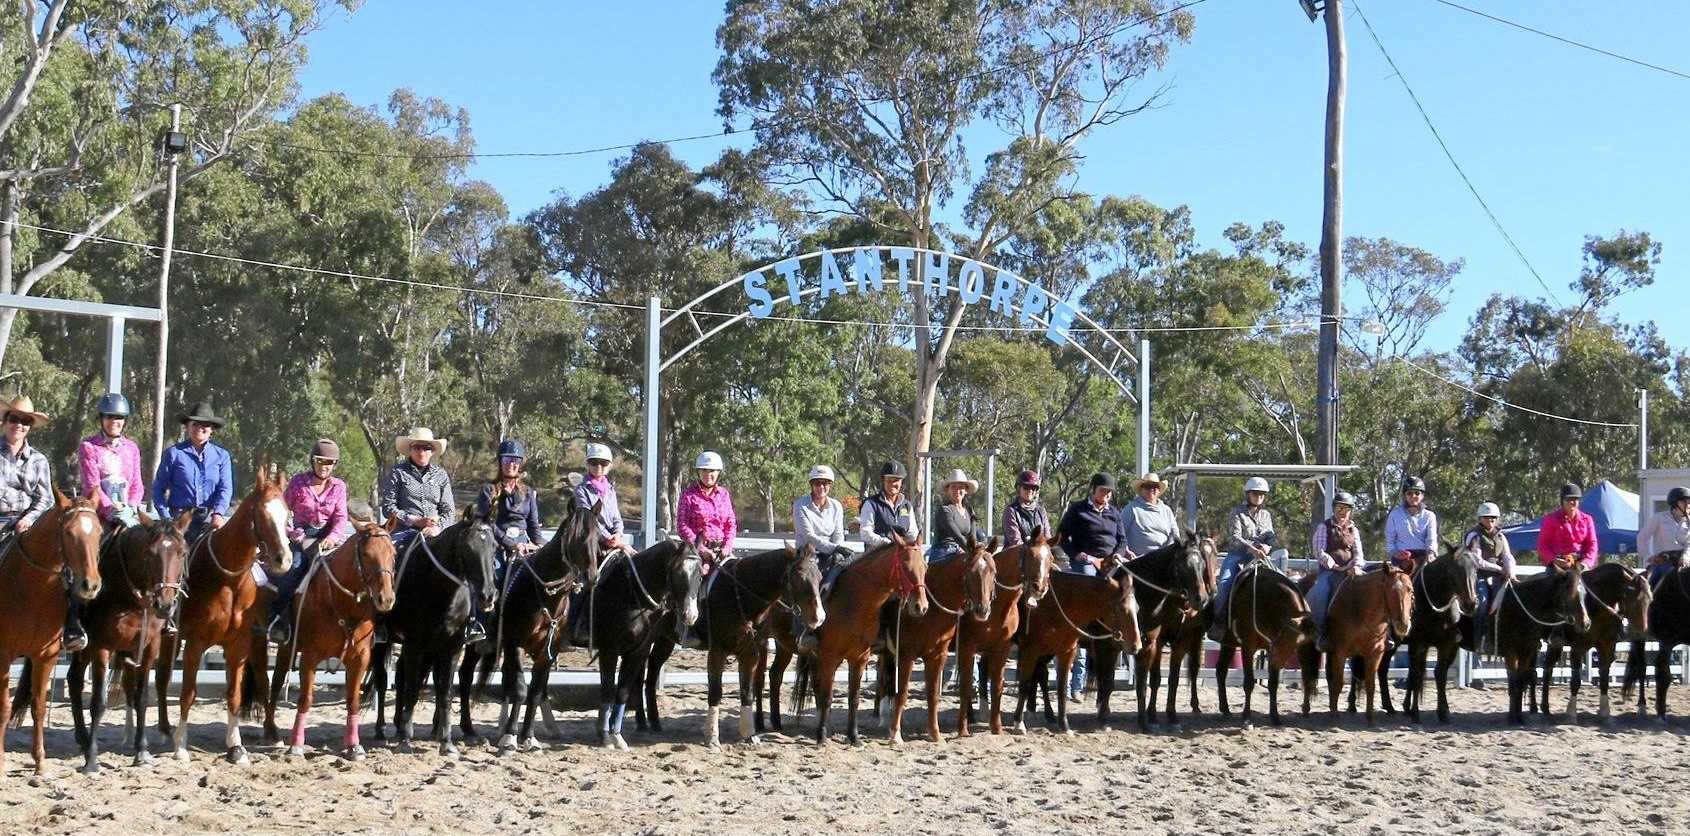 FUN DAY FOR MUMS: Mum's Run participants at the 2018 Stanthorpe Campdraft.